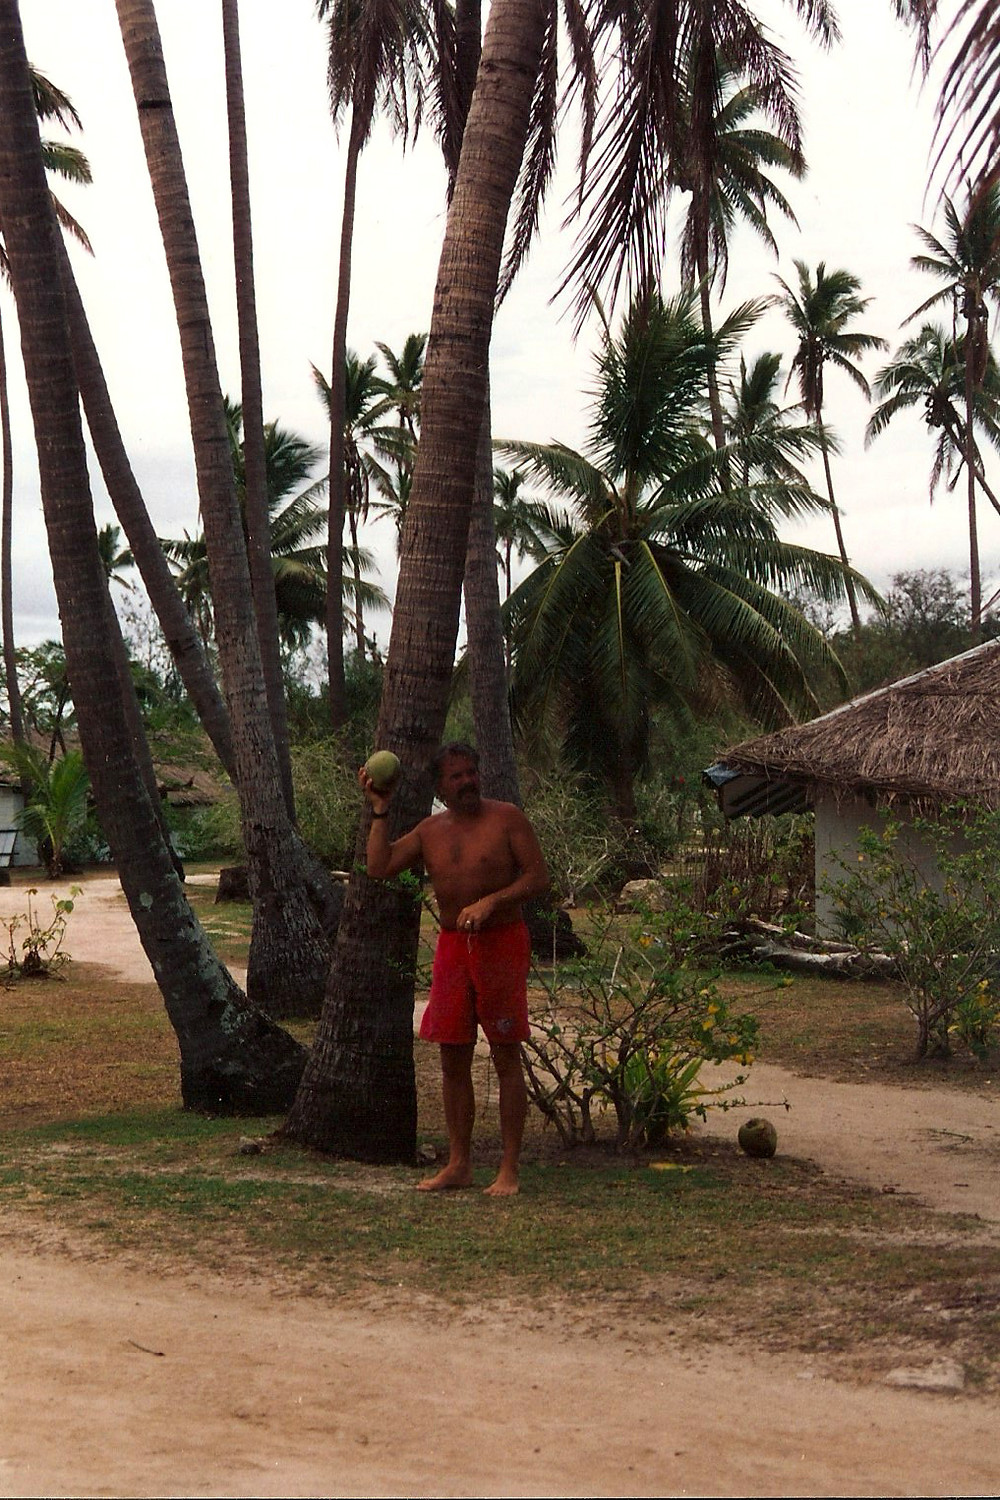 My dad with a coconut.